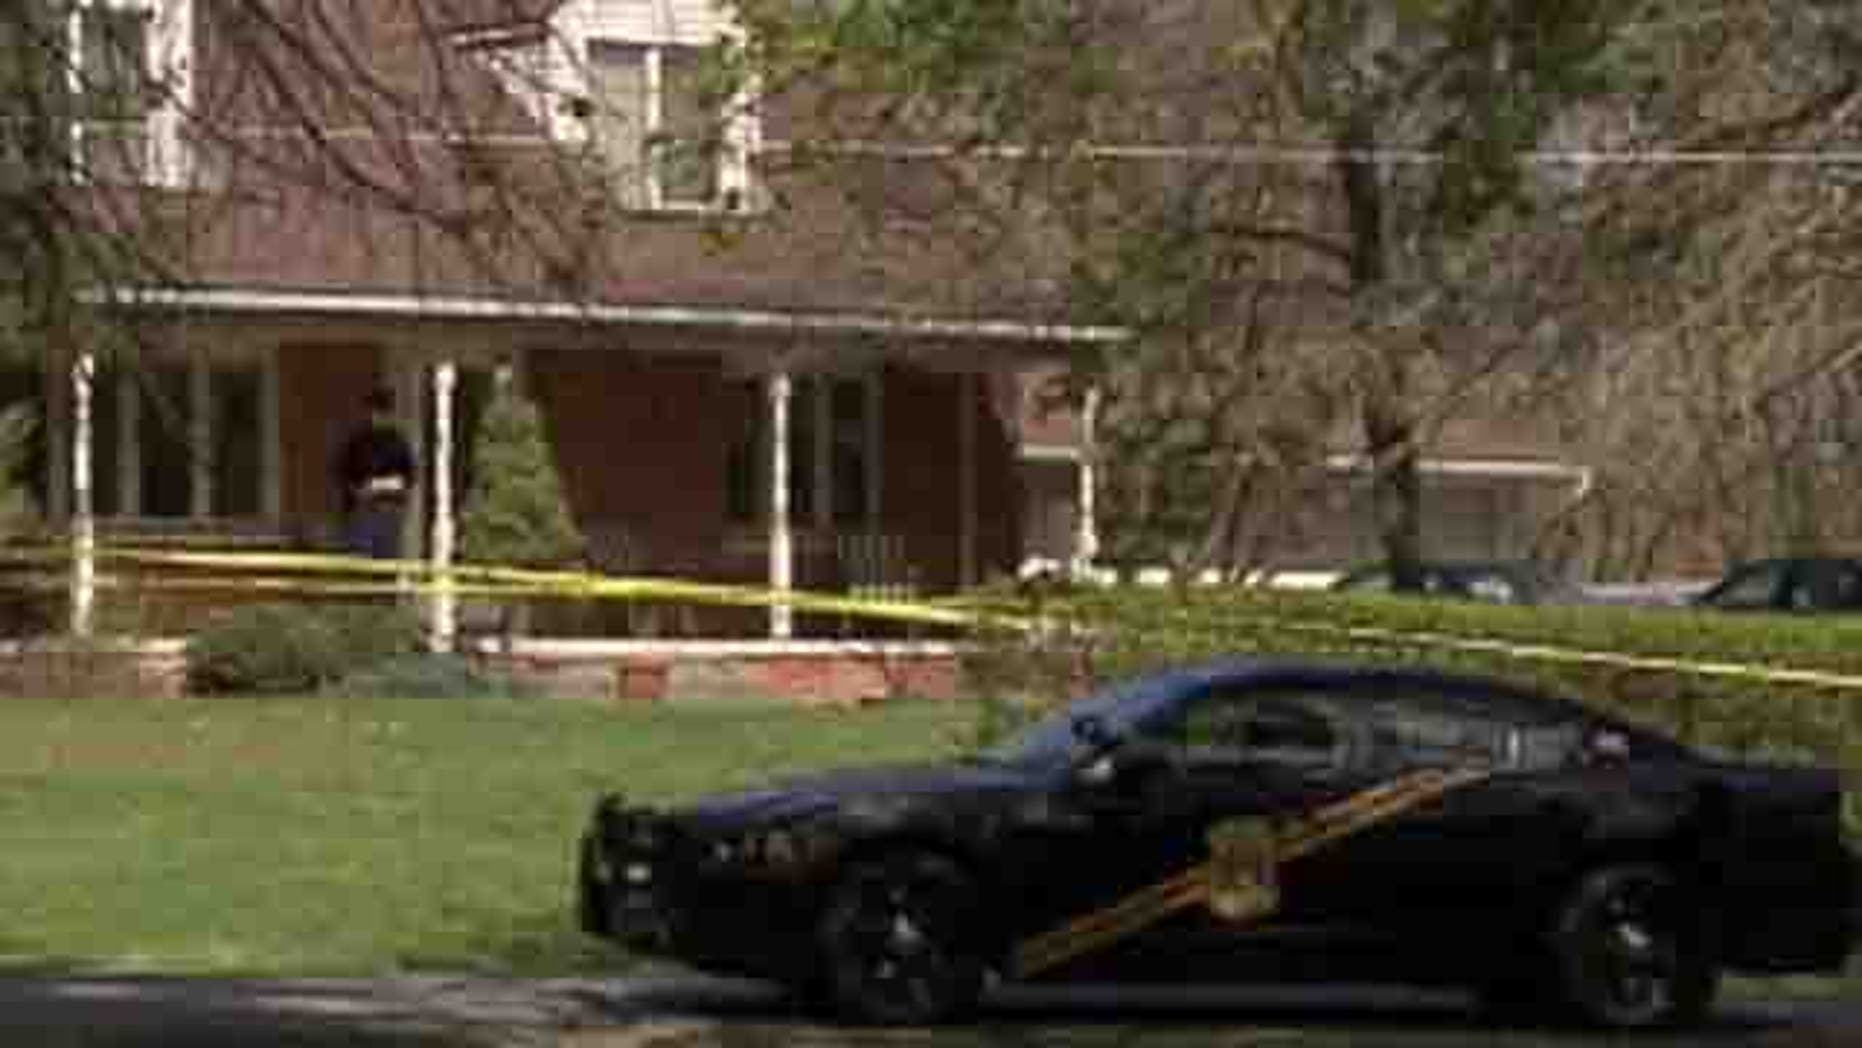 April 4, 2012: Police are seen outside the home where an apparent triple murder-suicide occurred.